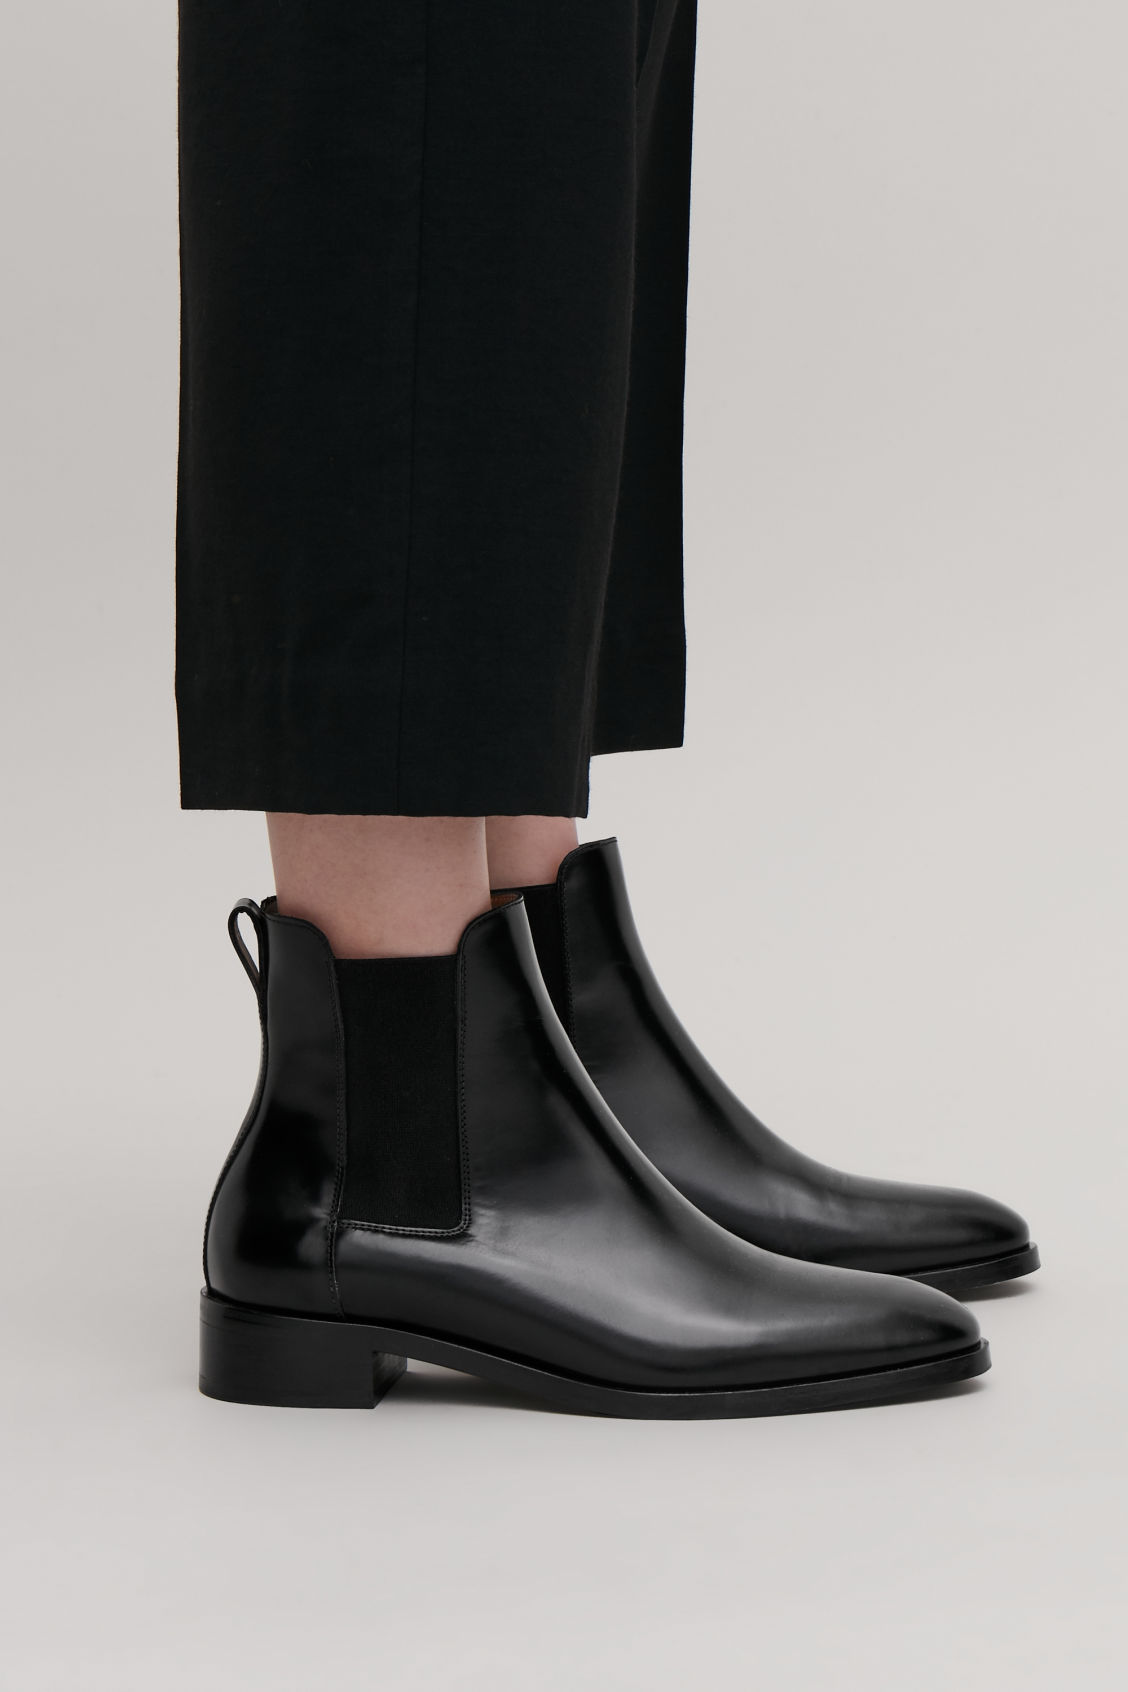 Detailed image of Cos chelsea boots in black